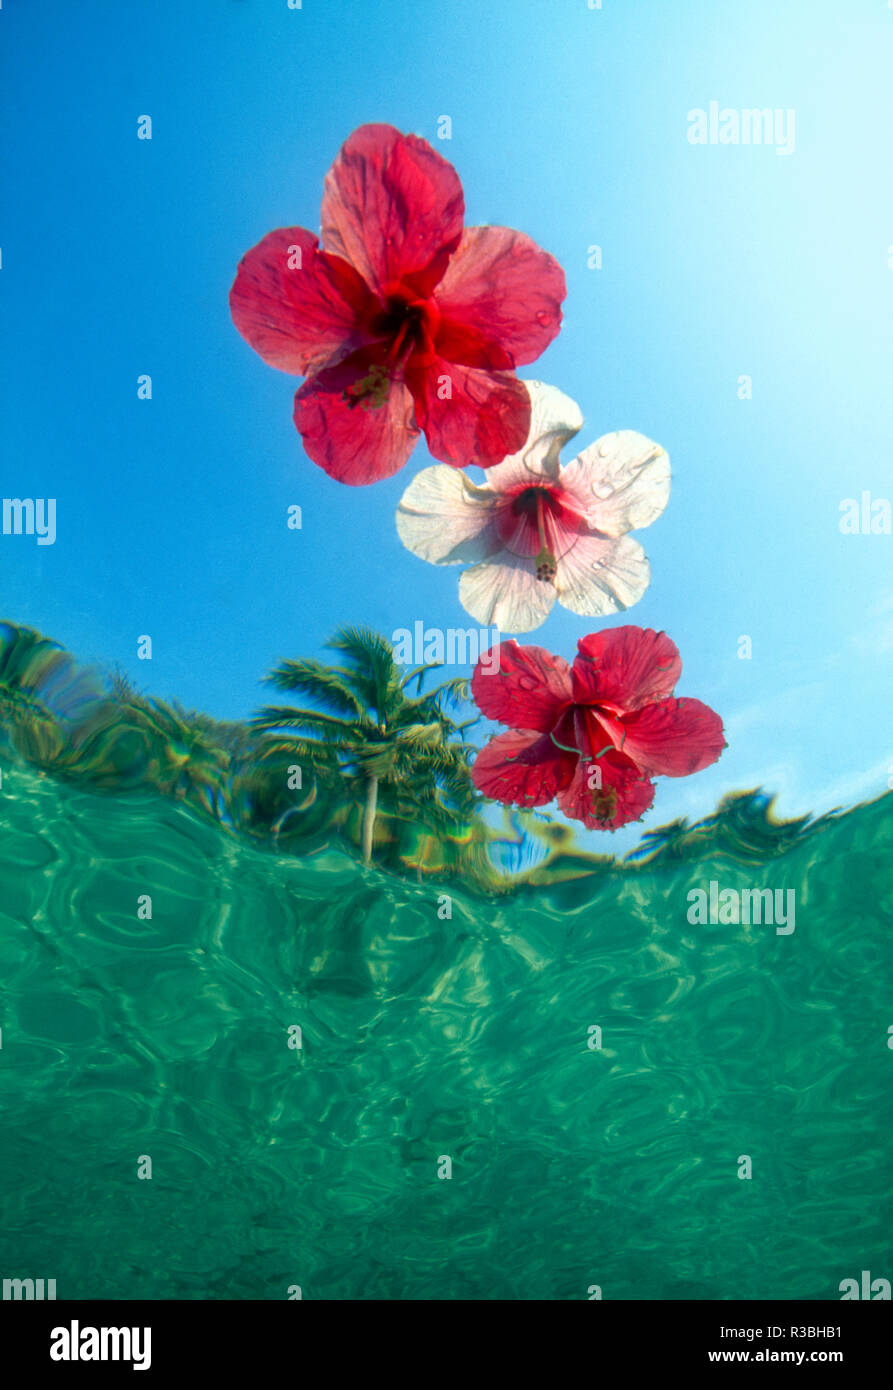 Underwater view looking up at floating hibiscus flowers in tropical water. - Stock Image